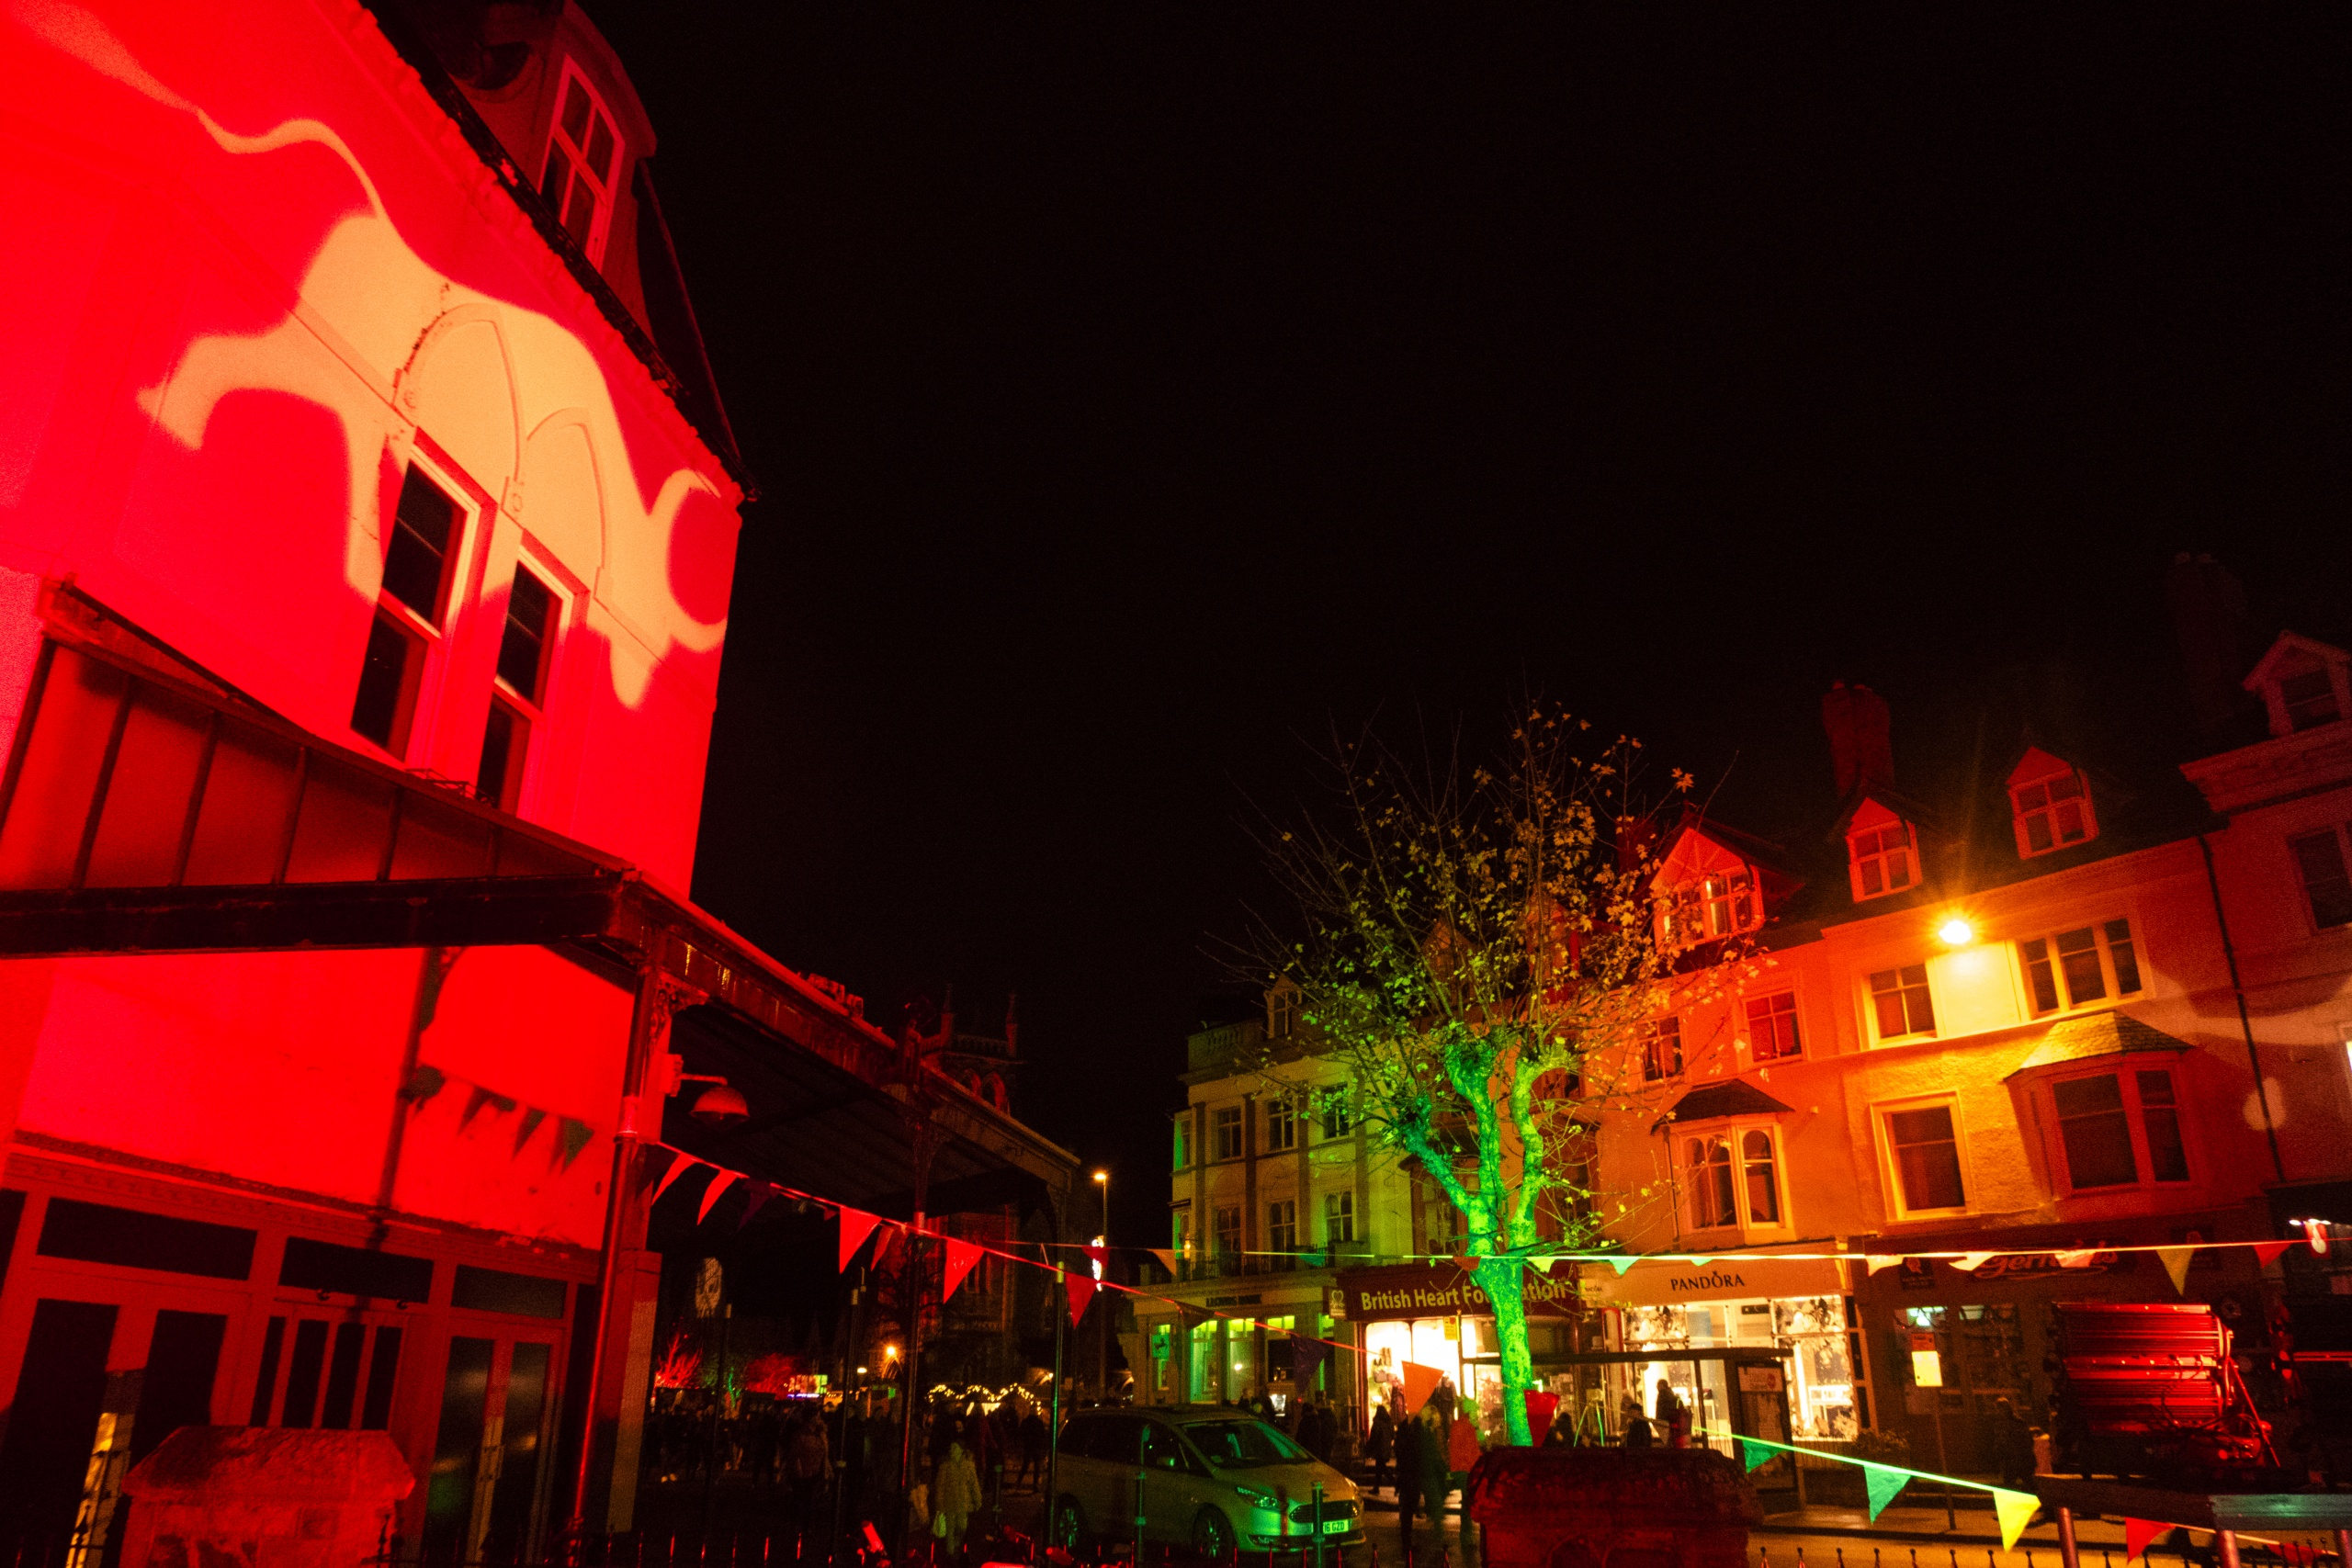 Coloured outdoor lighting and gobo projection at the Llandudno Winter Light / Golau Gaeaf event, in North Wales. A building on Mostyn Street is illuminated in red with a white gobo of an ox. Tree is up-lit in green.